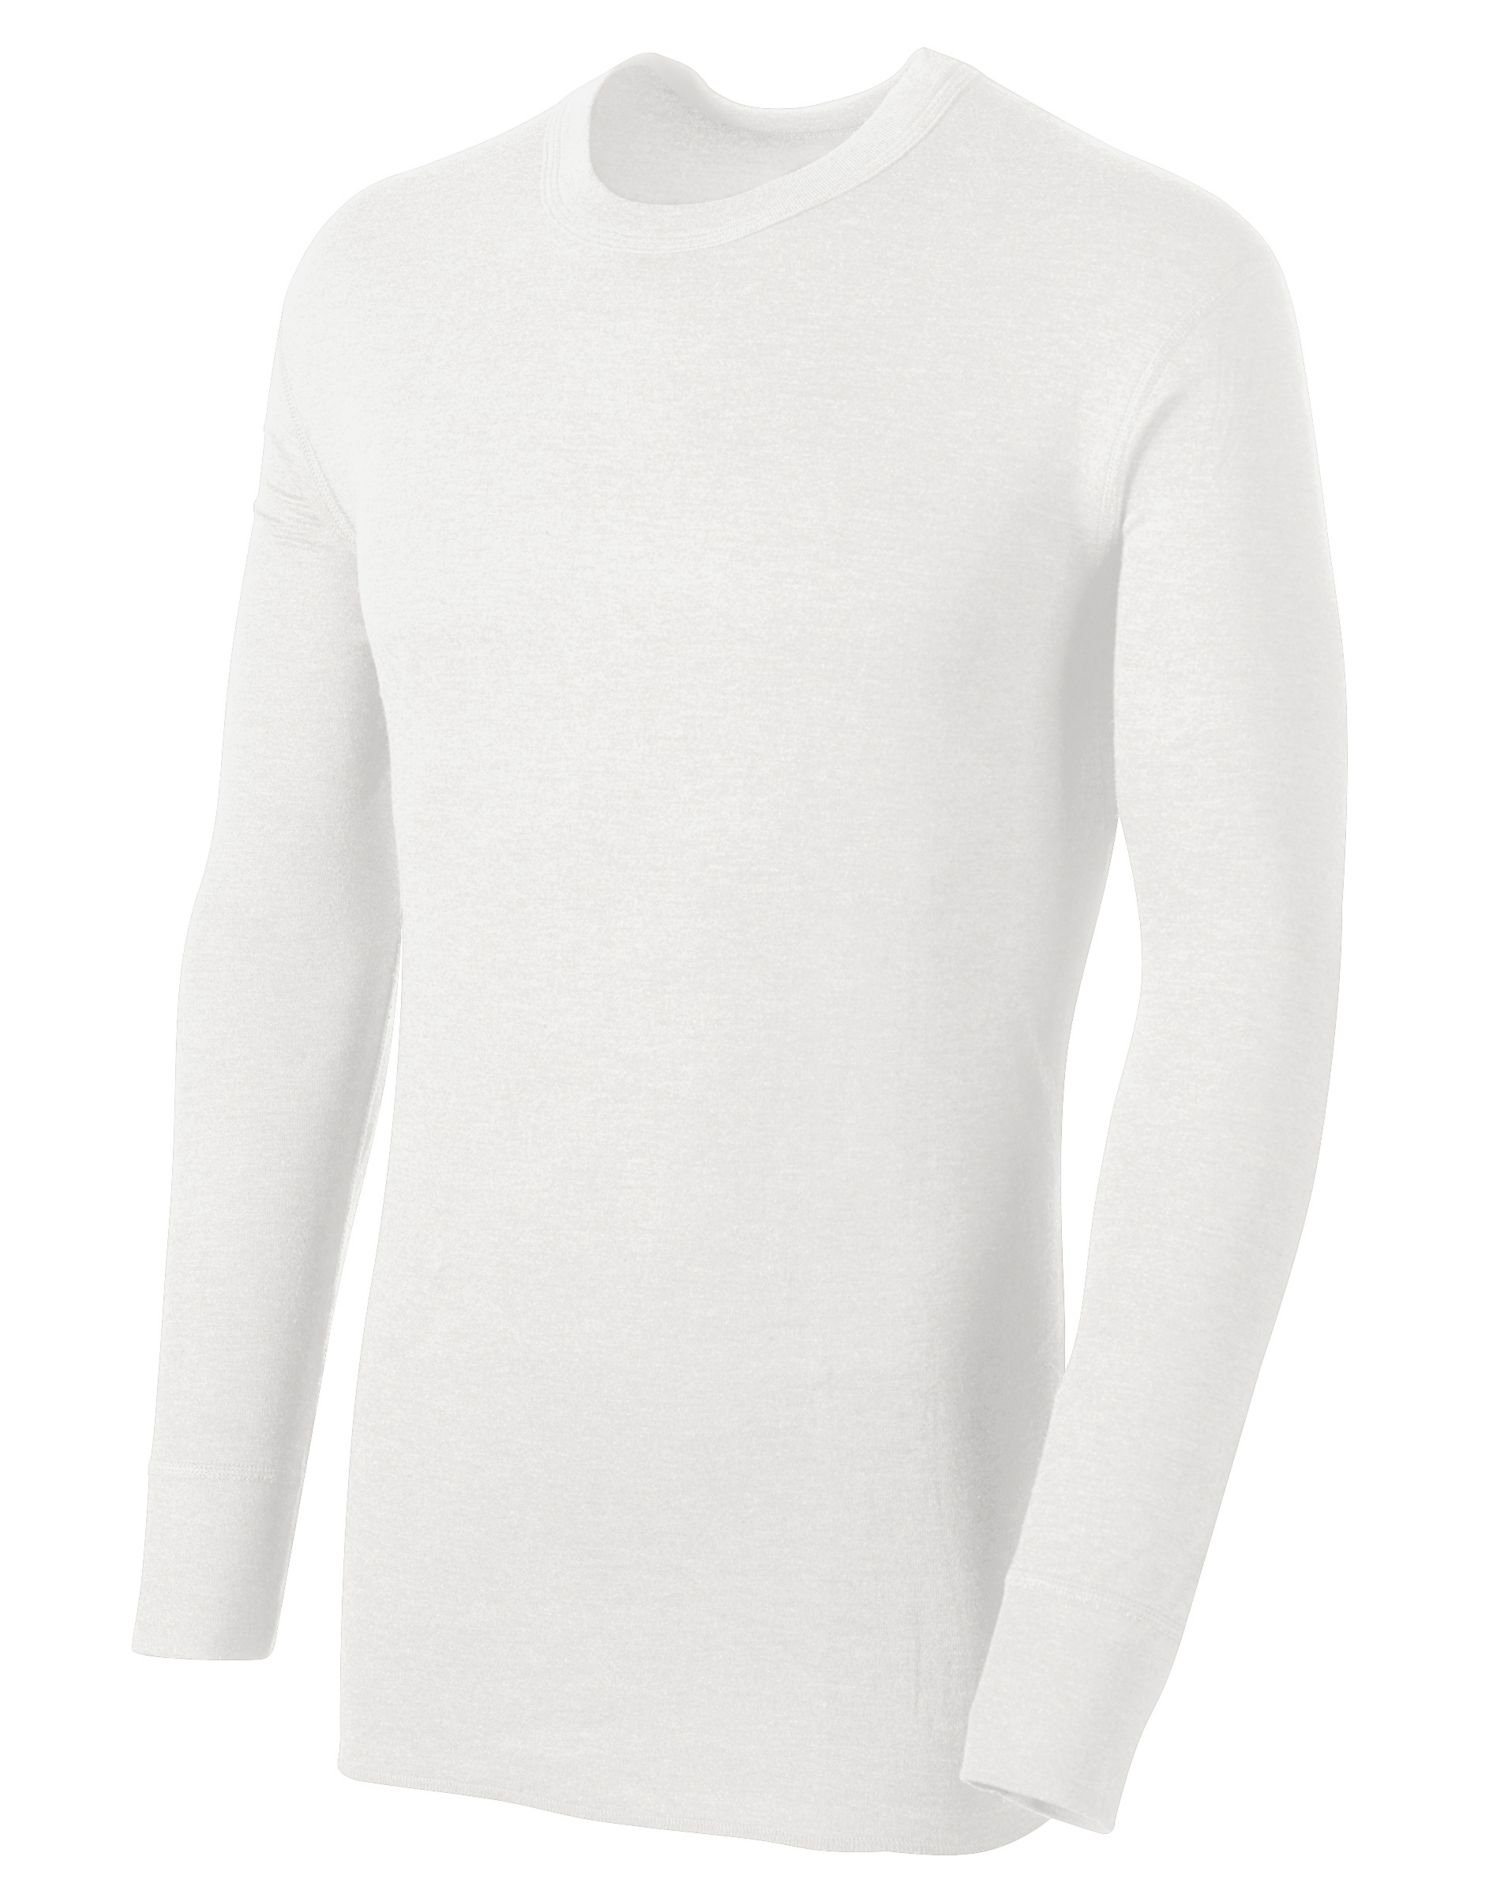 Duofold Men's Midweight Thermal Crew, White,  Small